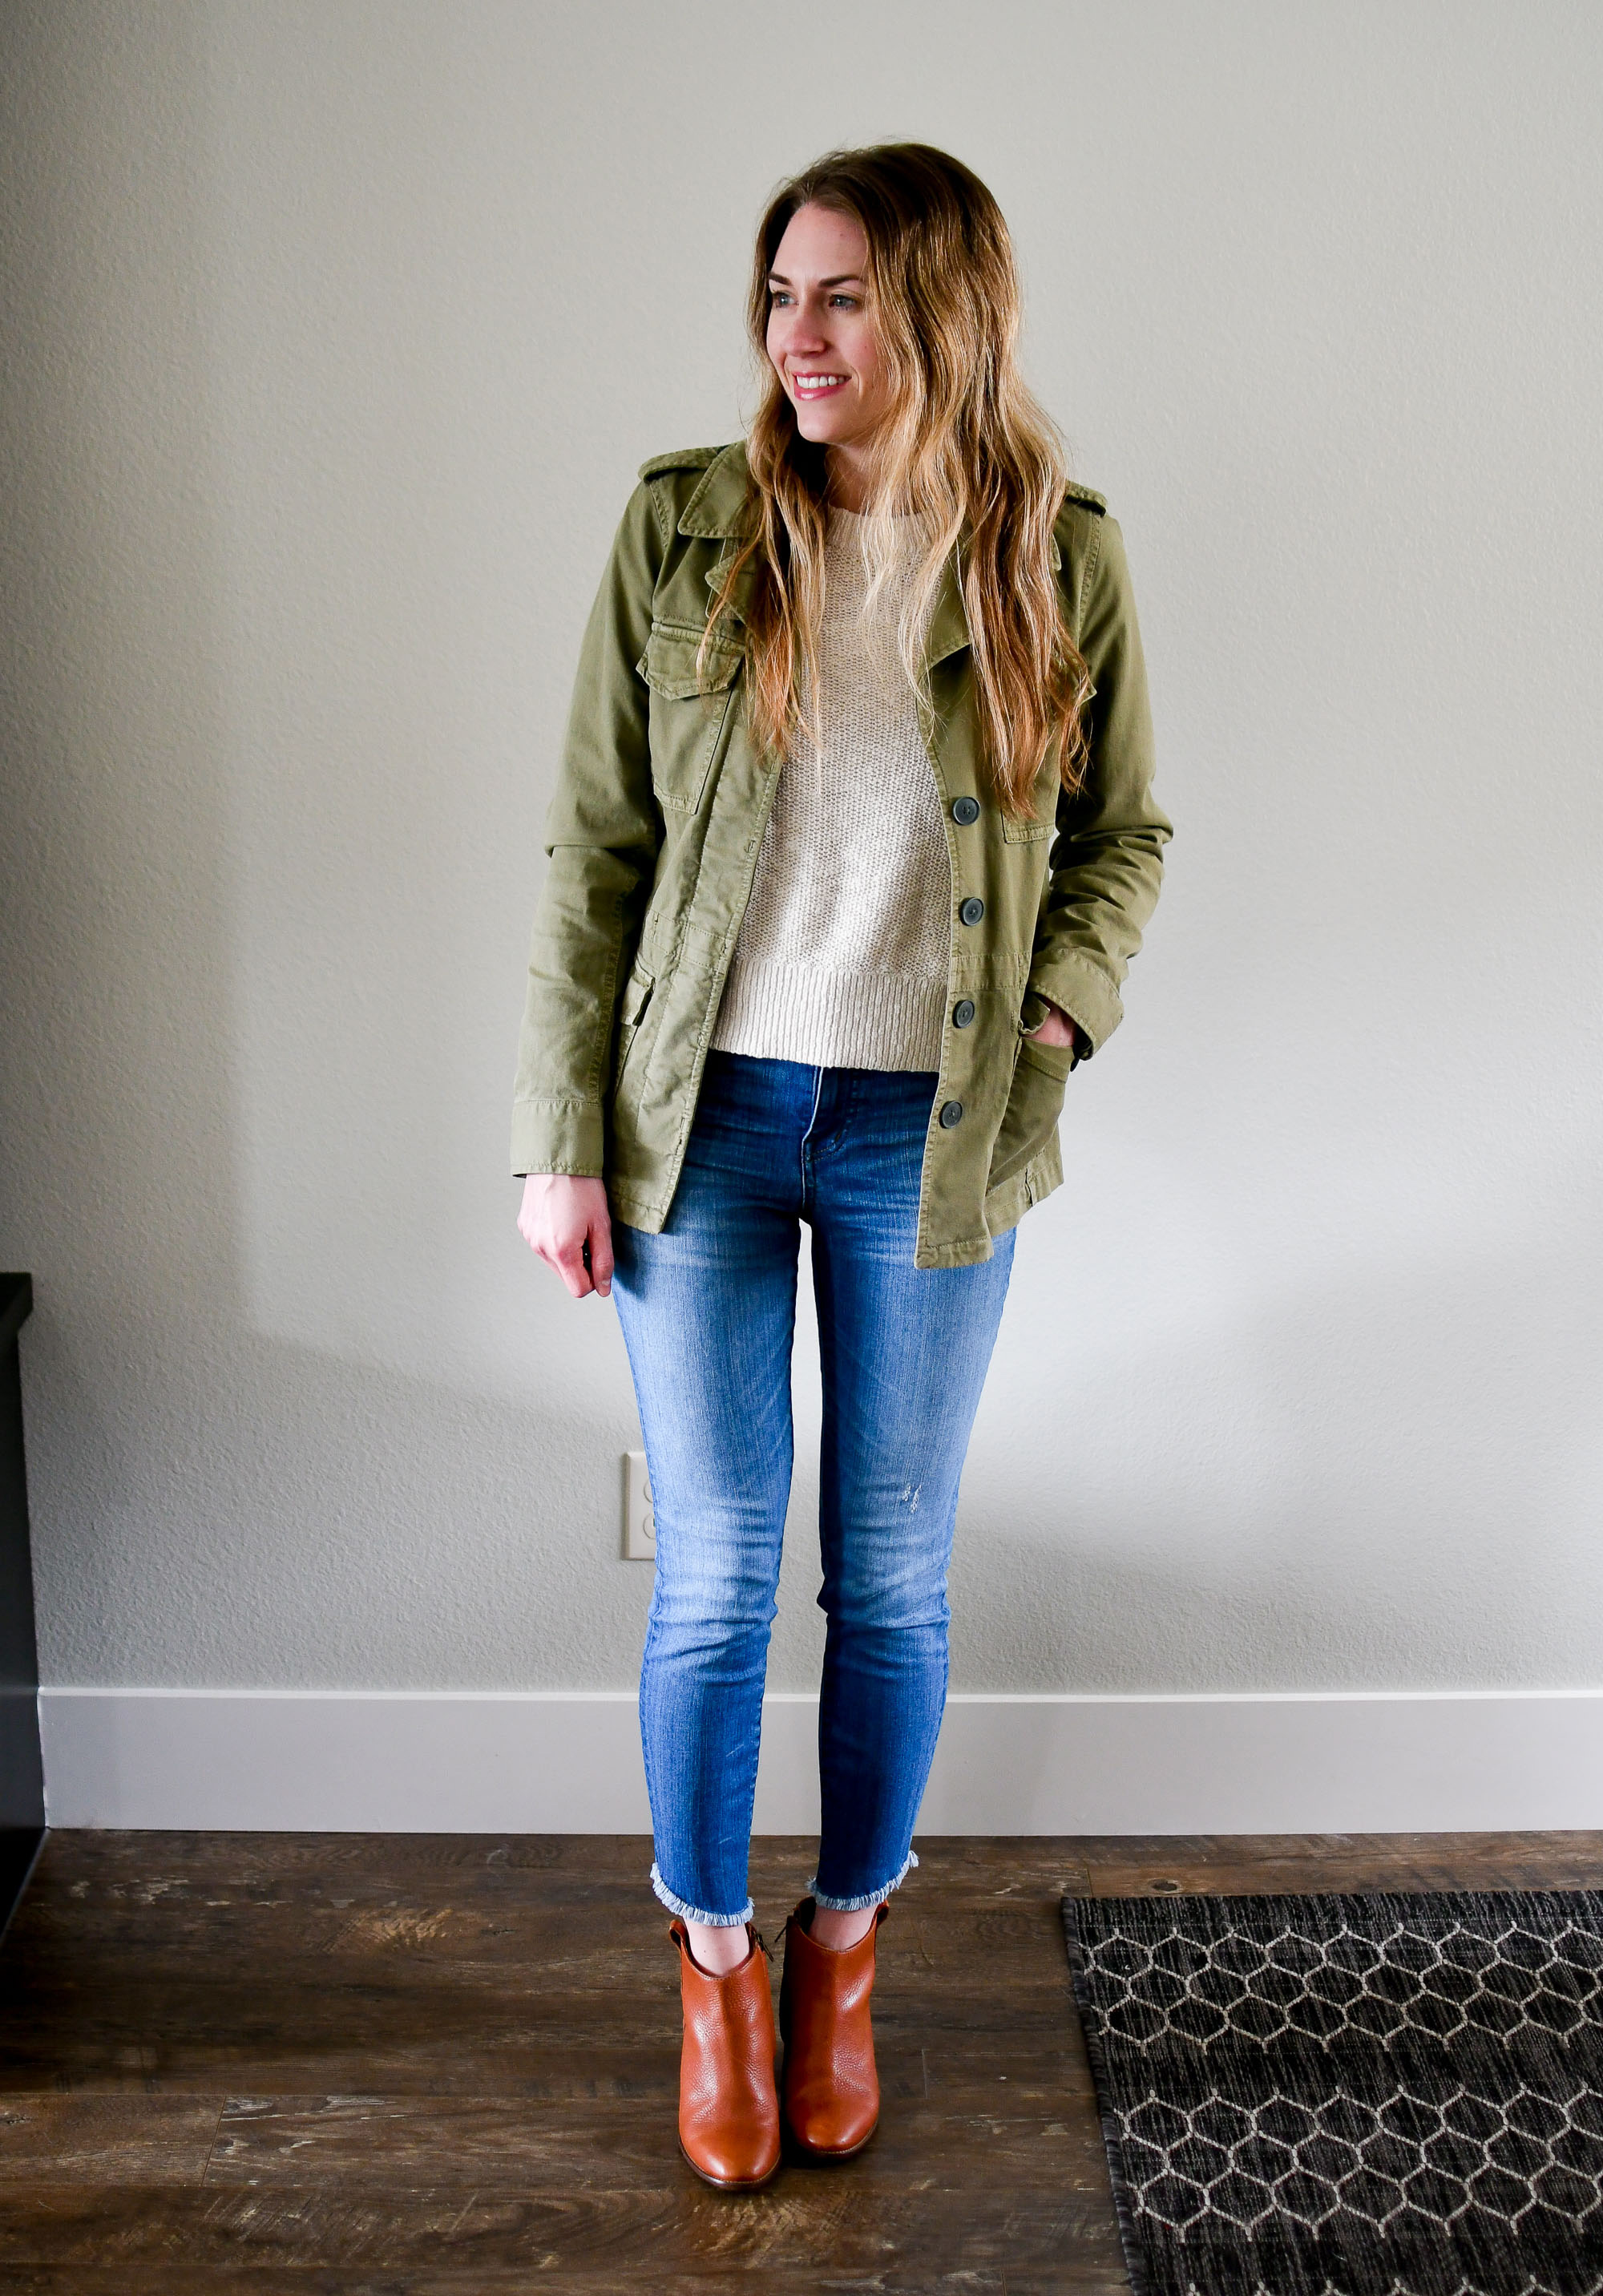 Casual spring outfit with green jacket, skinny jeans, ankle boots — Cotton Cashmere Cat Hair